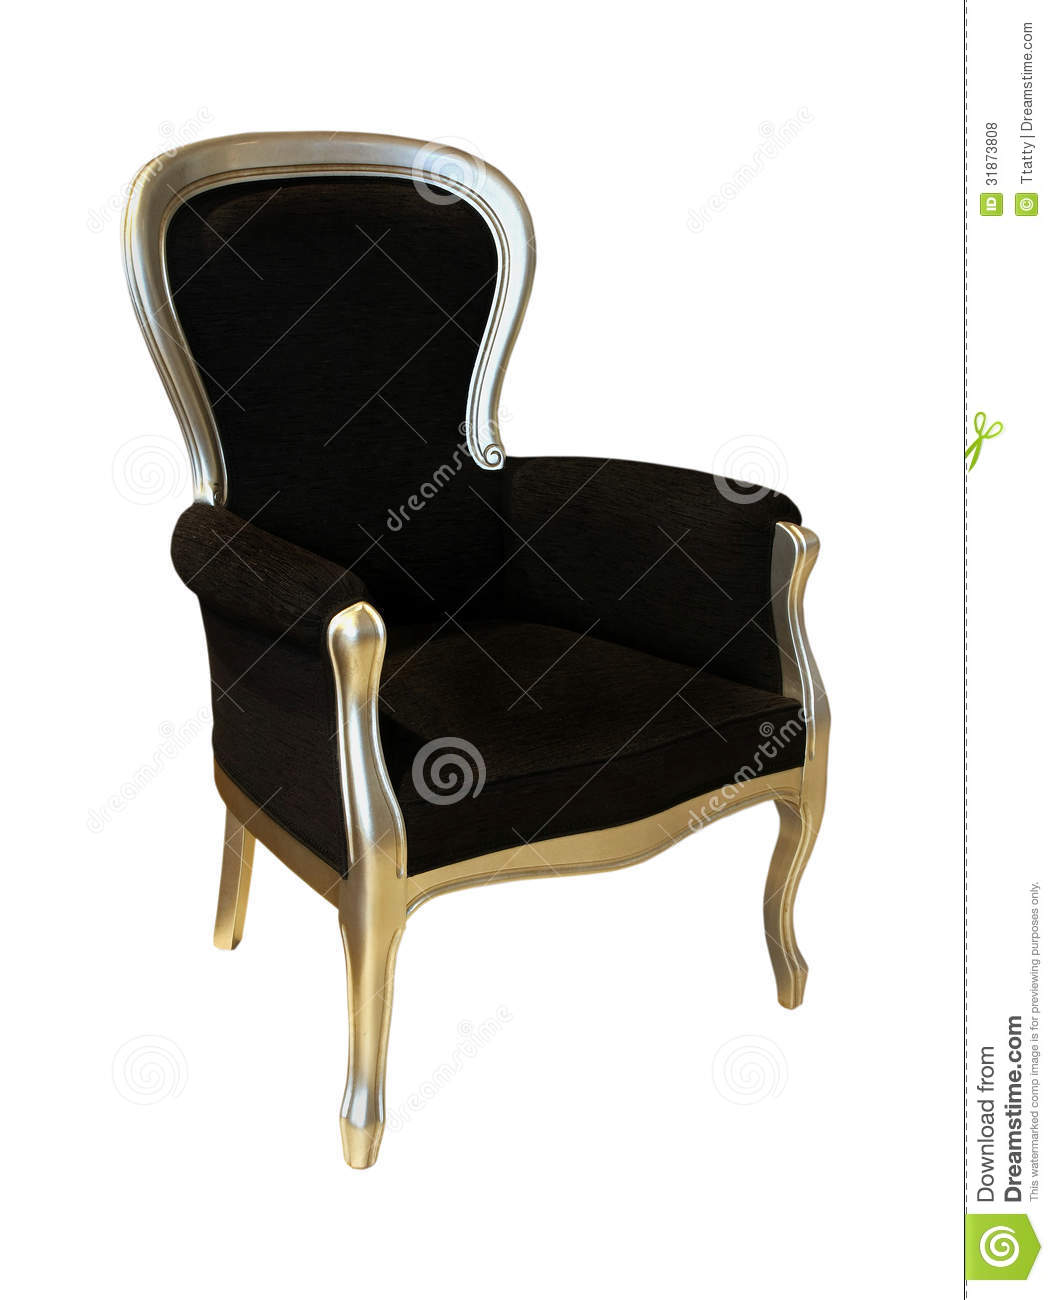 Black antique chair - Black Antique Chair Stock Photo. Image Of Path, Black - 31873808